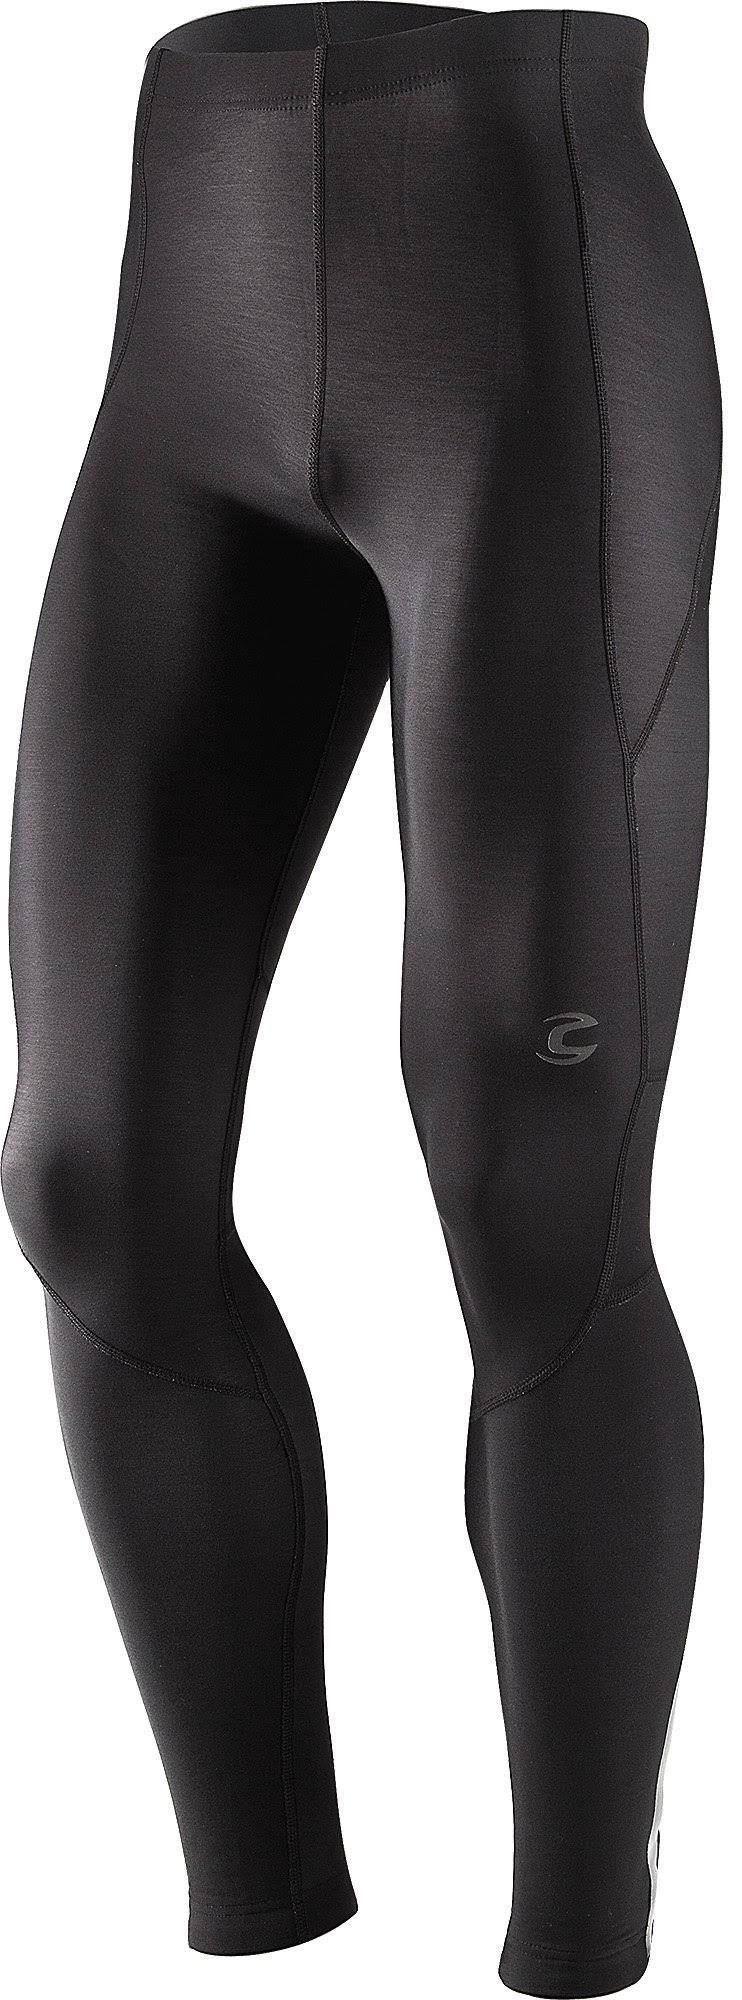 Cannondale Men's Midweight Tights, Black, X-Large